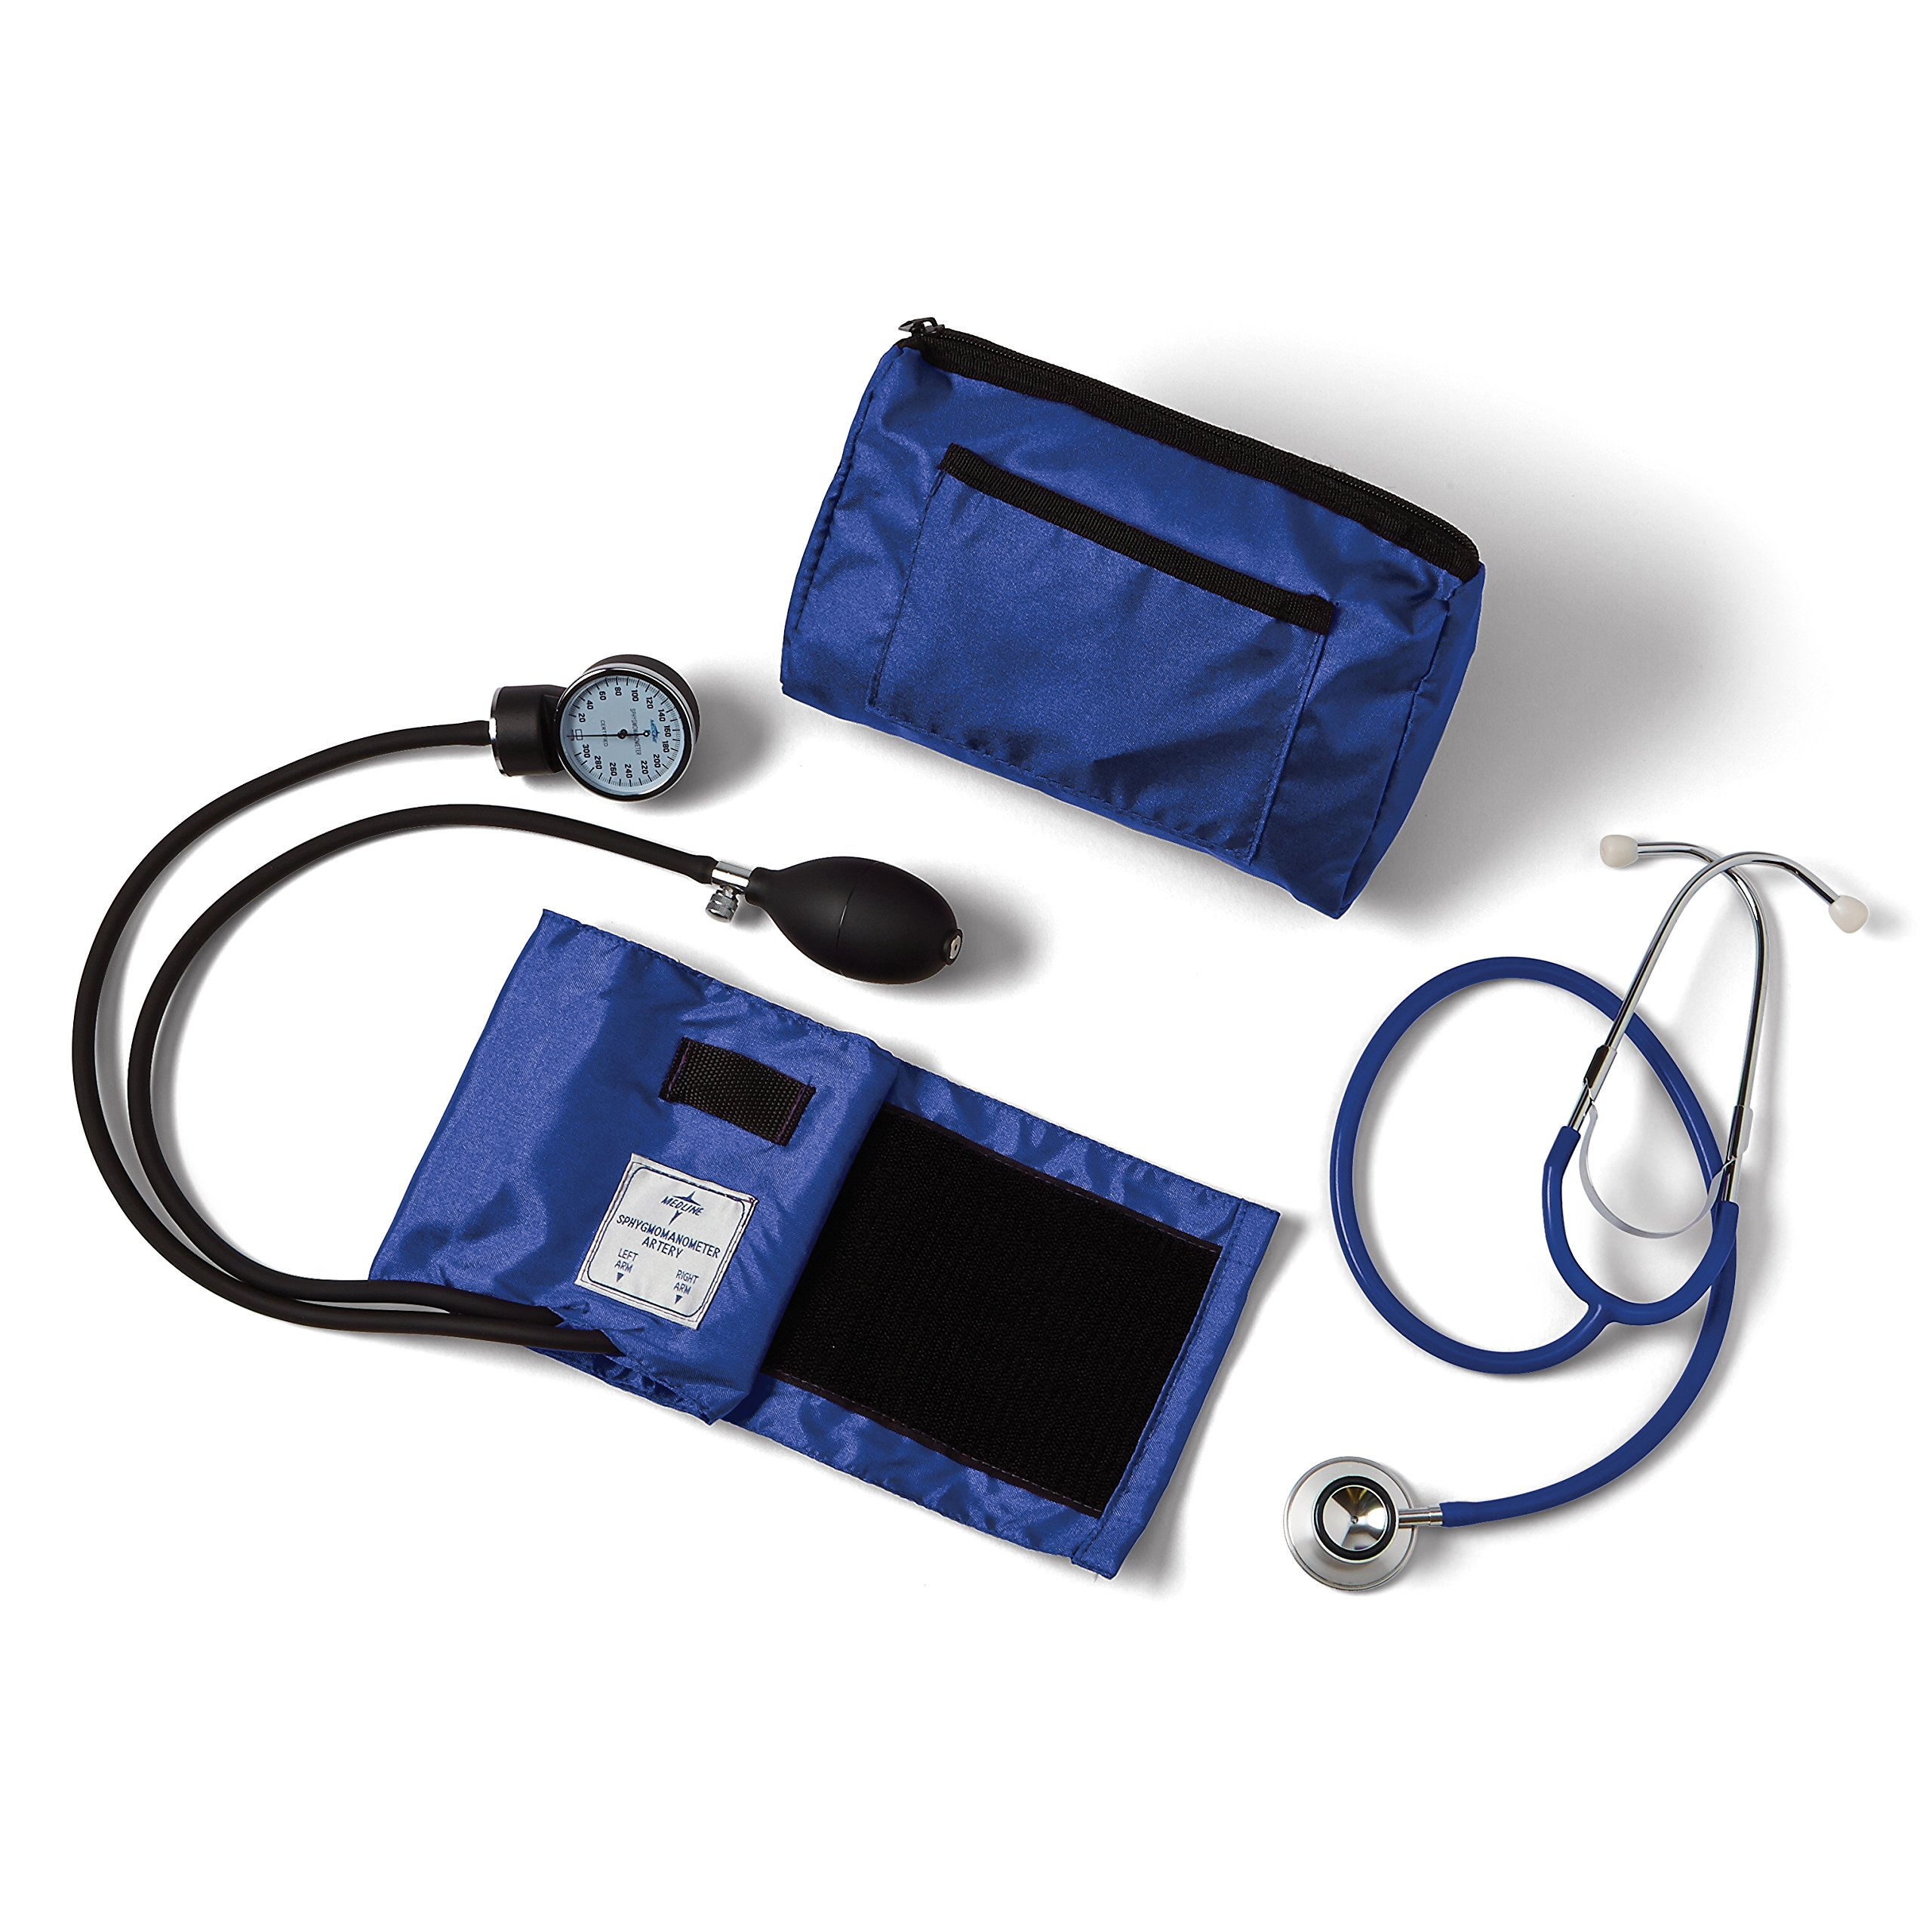 Medline Compli-Mates Aneroid Sphygmomanometer and Dual Head Stethoscope Kit, Carrying Case, Adult Blood Pressure Cuff, Manual, Professional, Royal Blue